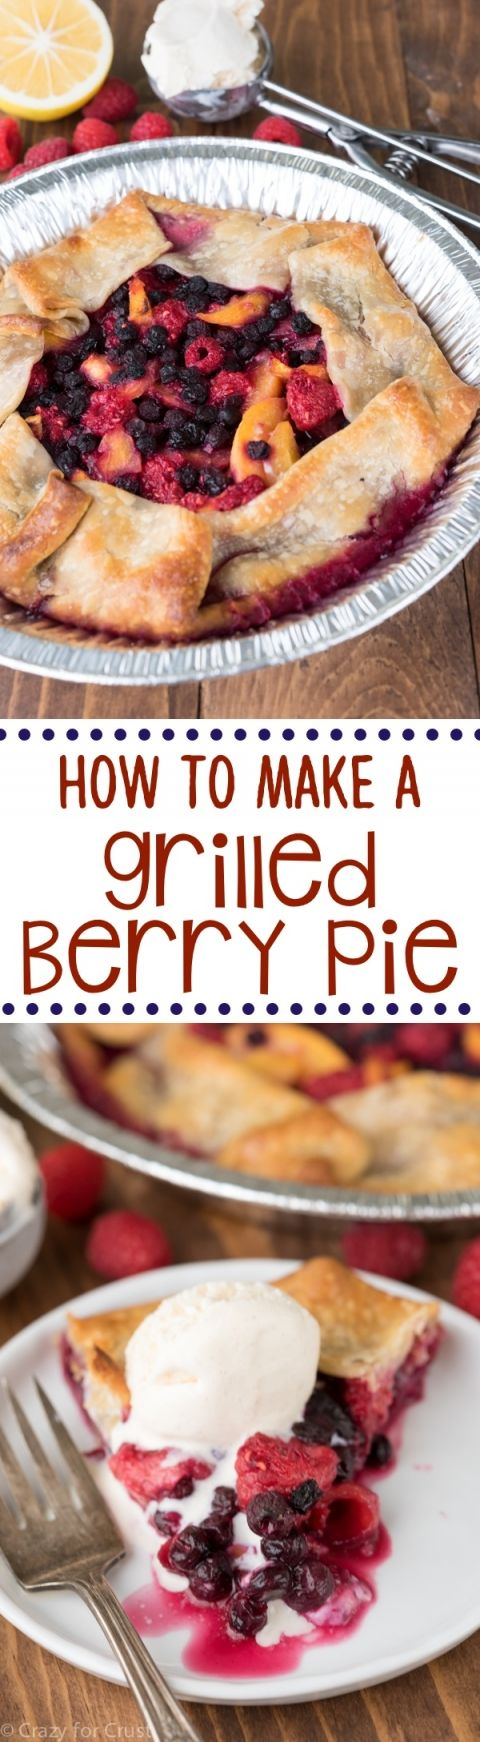 Learn how to grill a pie! This Grilled Berry Peach Pie Recipe is so easy and is made on the BBQ! No oven needed so it's the perfect dessert for summer.